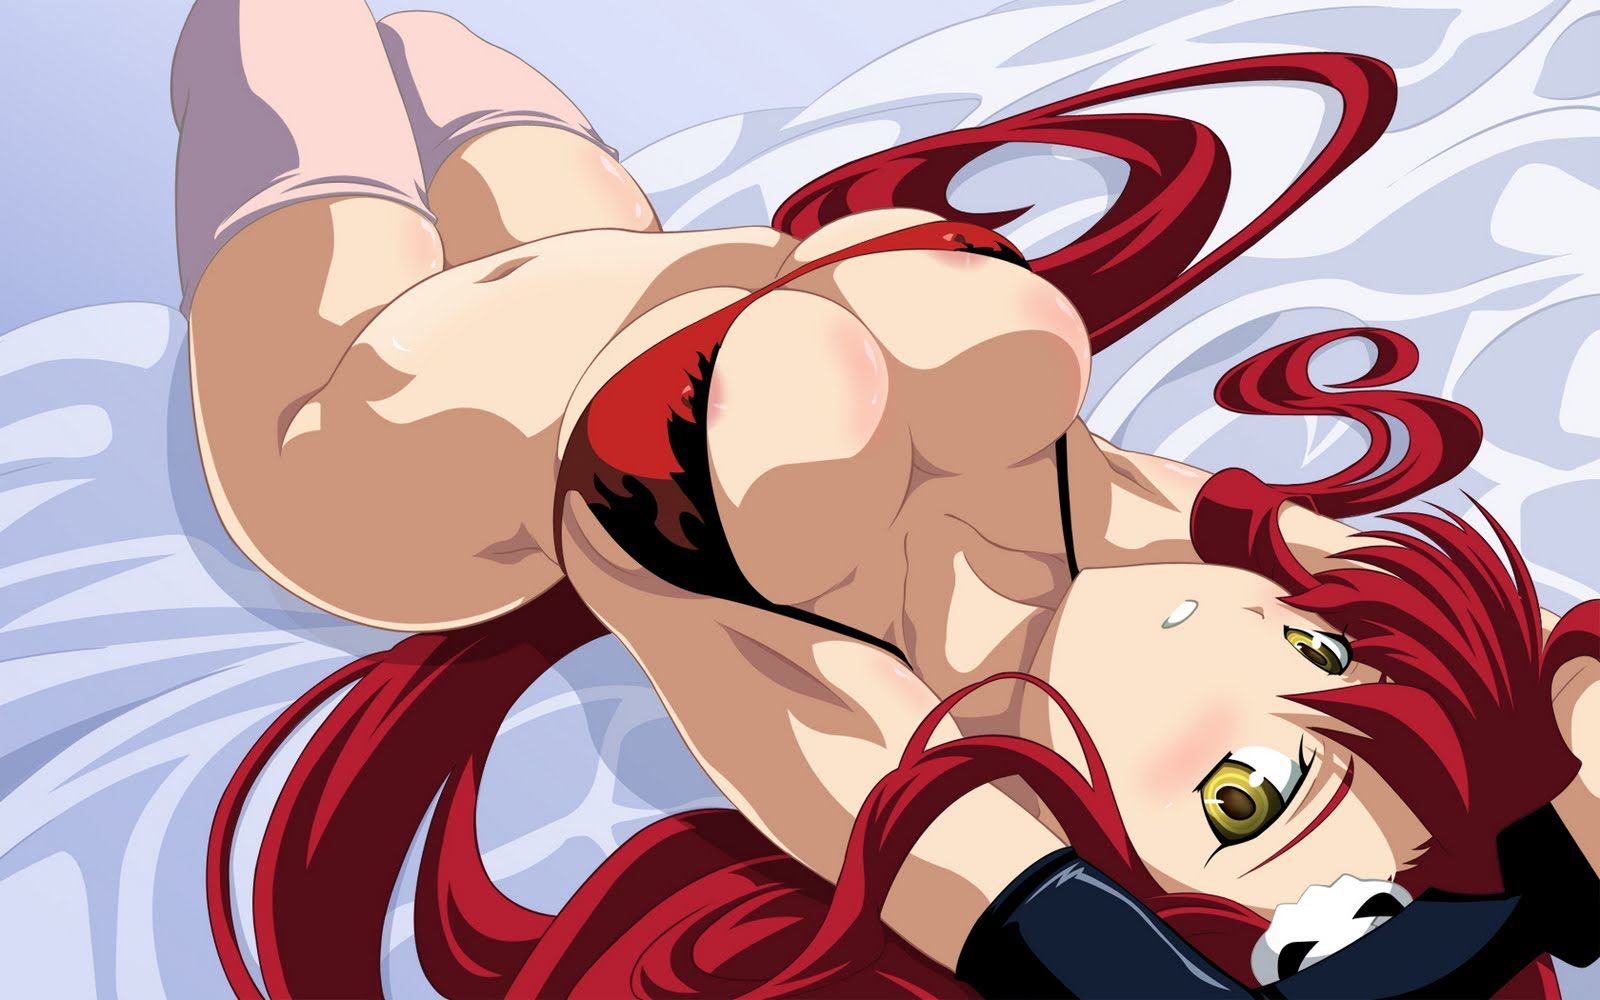 Rasario vampire tentacle monster hentia sexual image